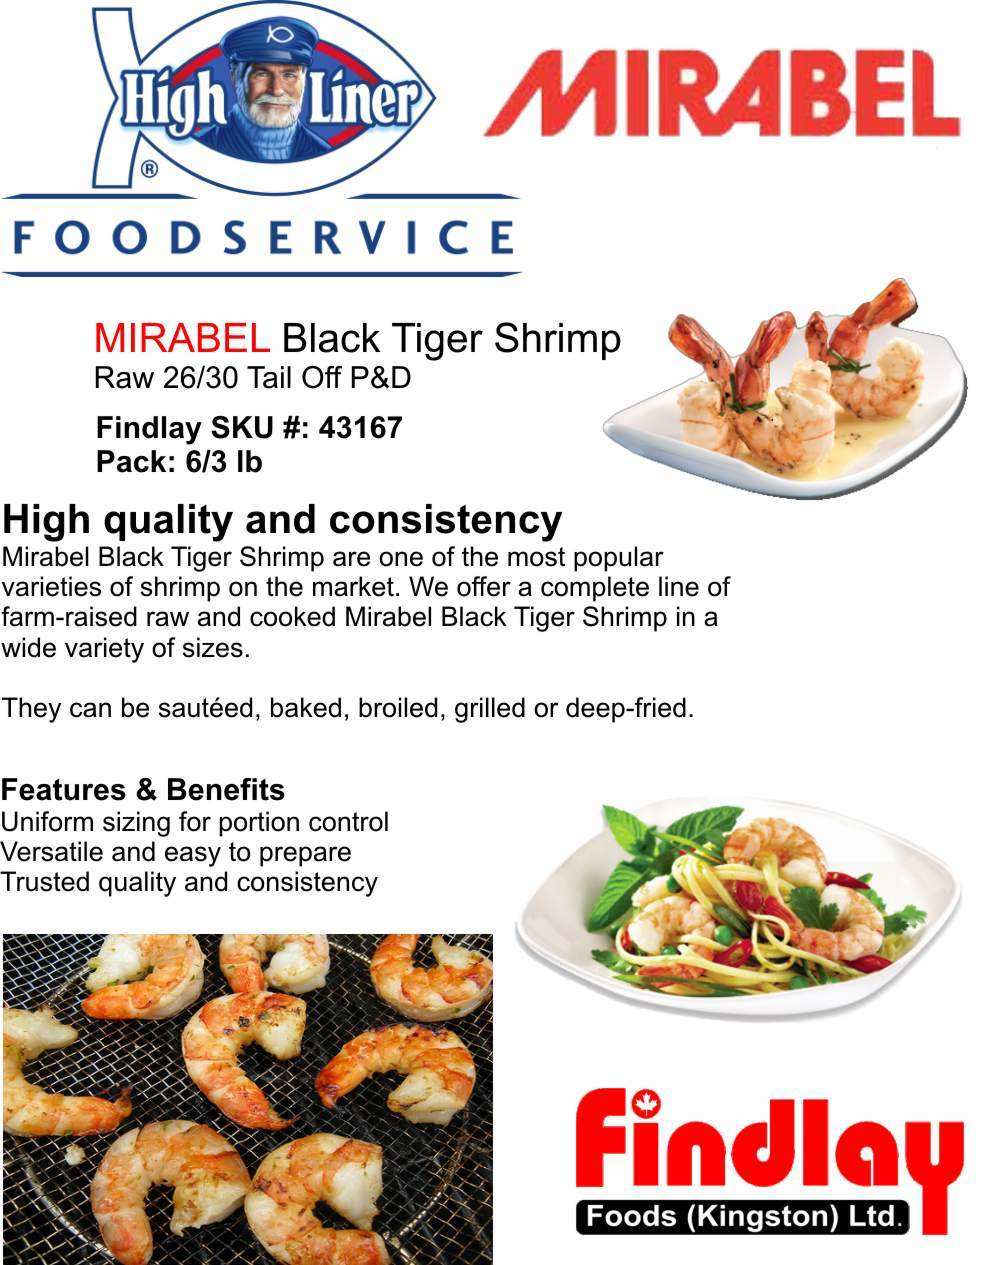 whats-new-mirabel-shrimp